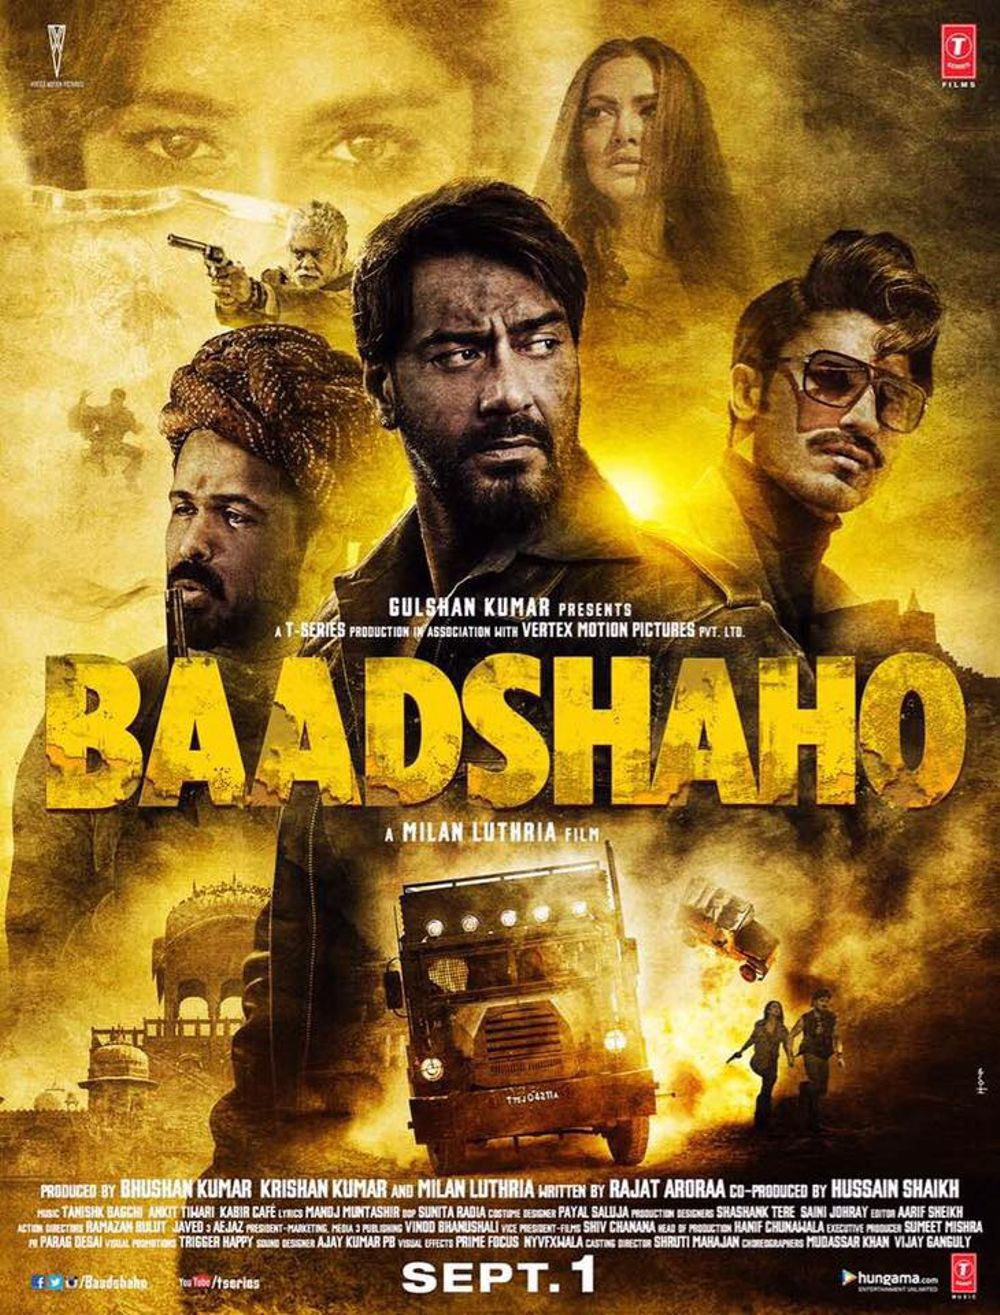 Baadshaho Movie Review Hindi Movie Review